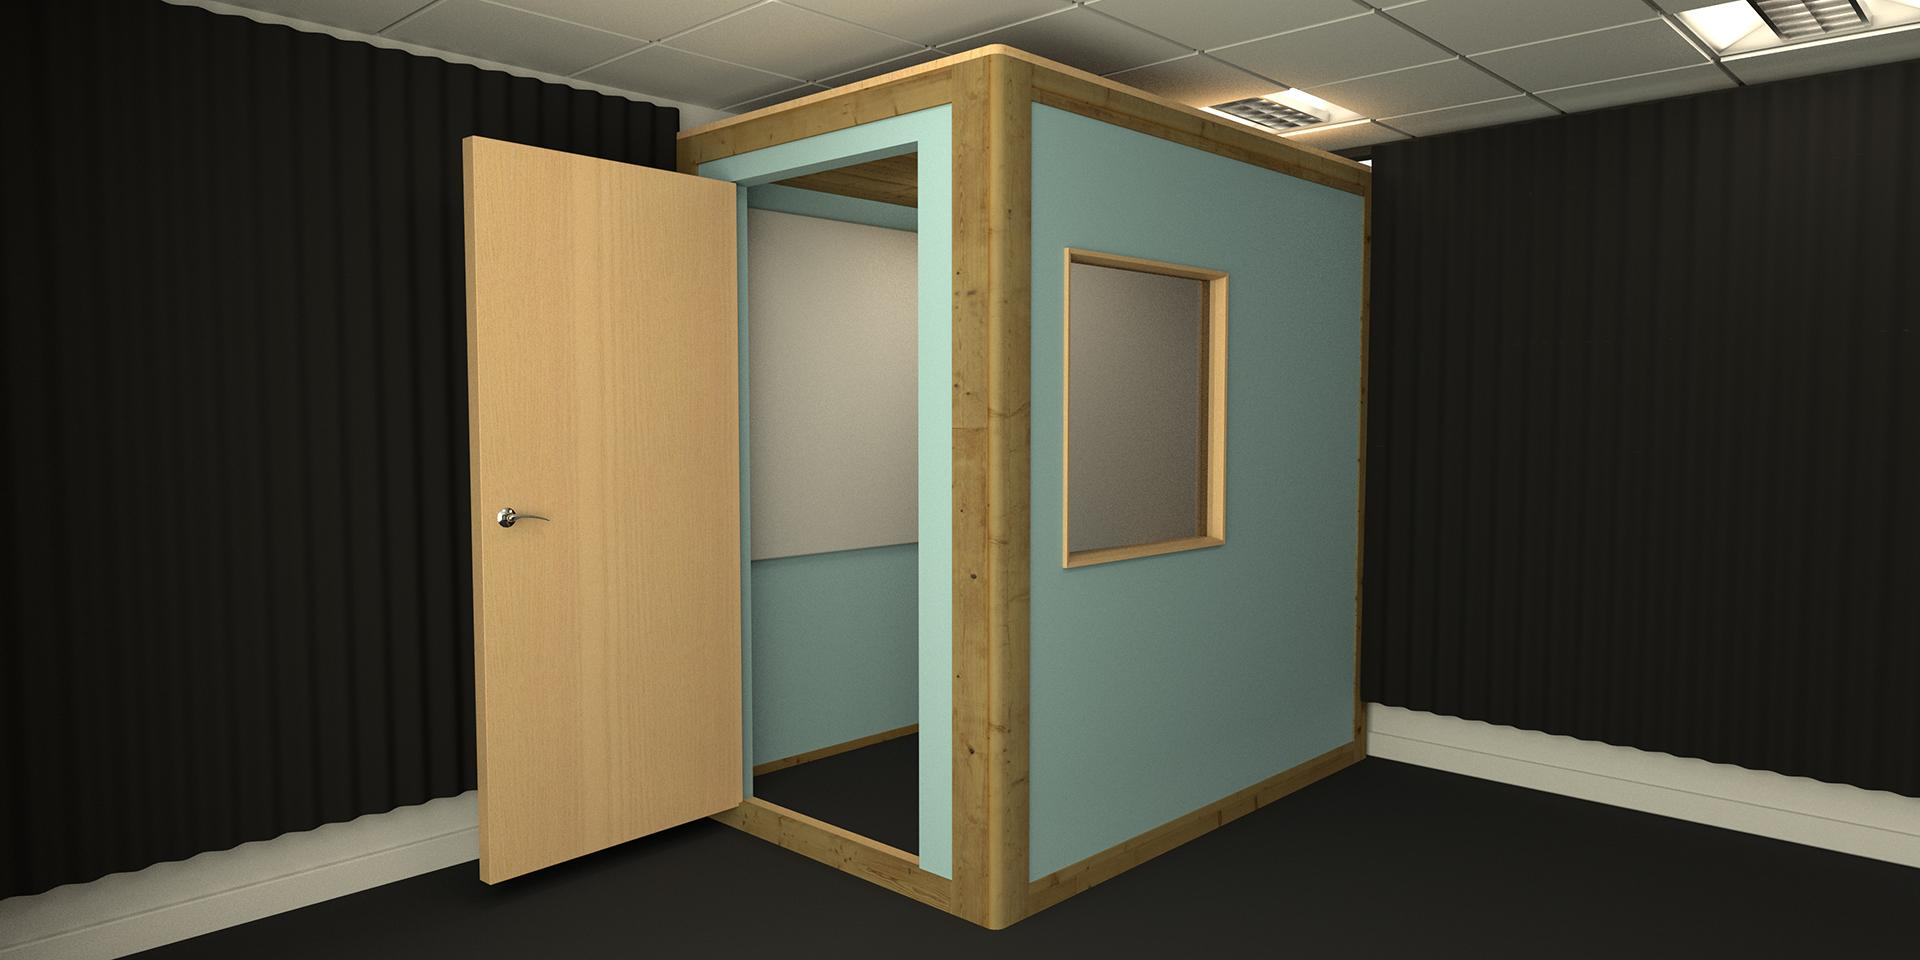 How To Make A Recording Booth In Your Room